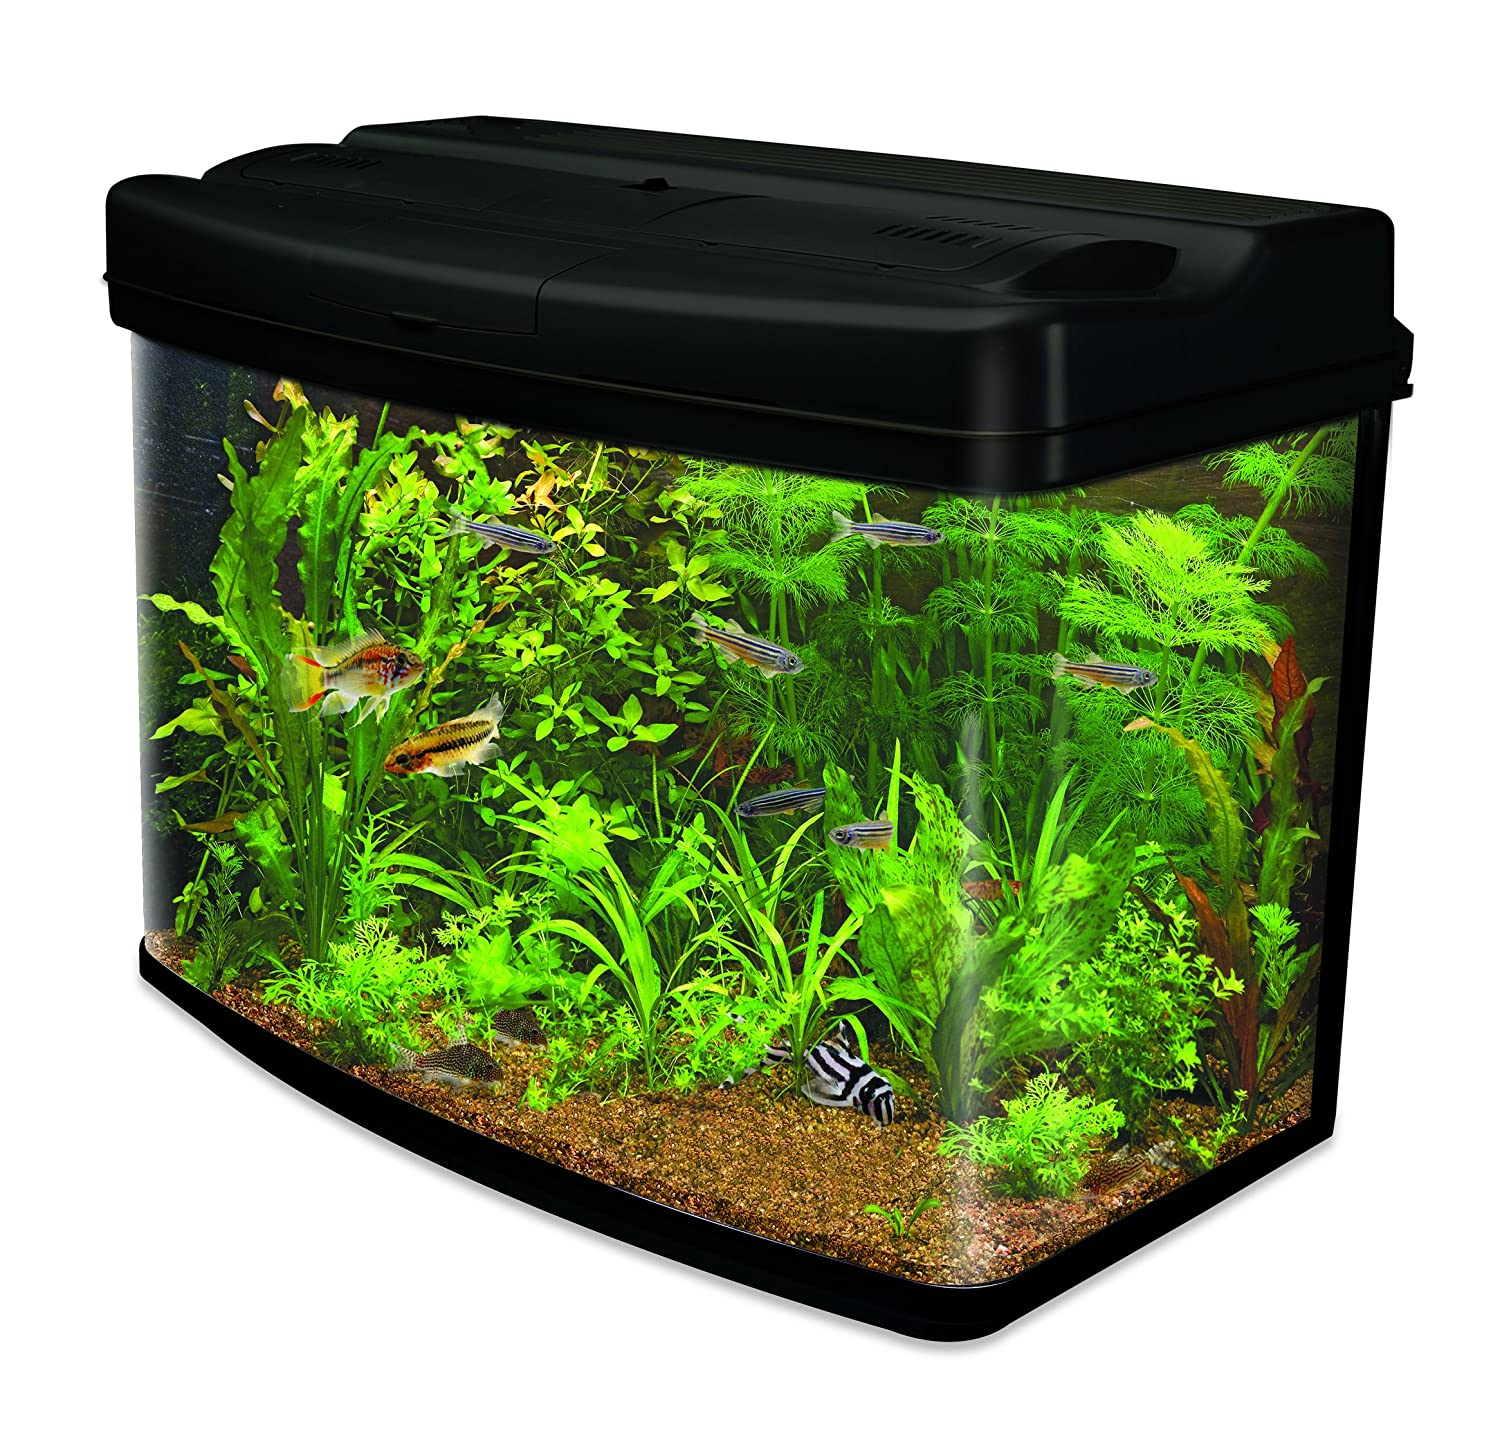 Interpet Fish Pod Glass Aquarium Fish Tank Including CF3 Cartridge